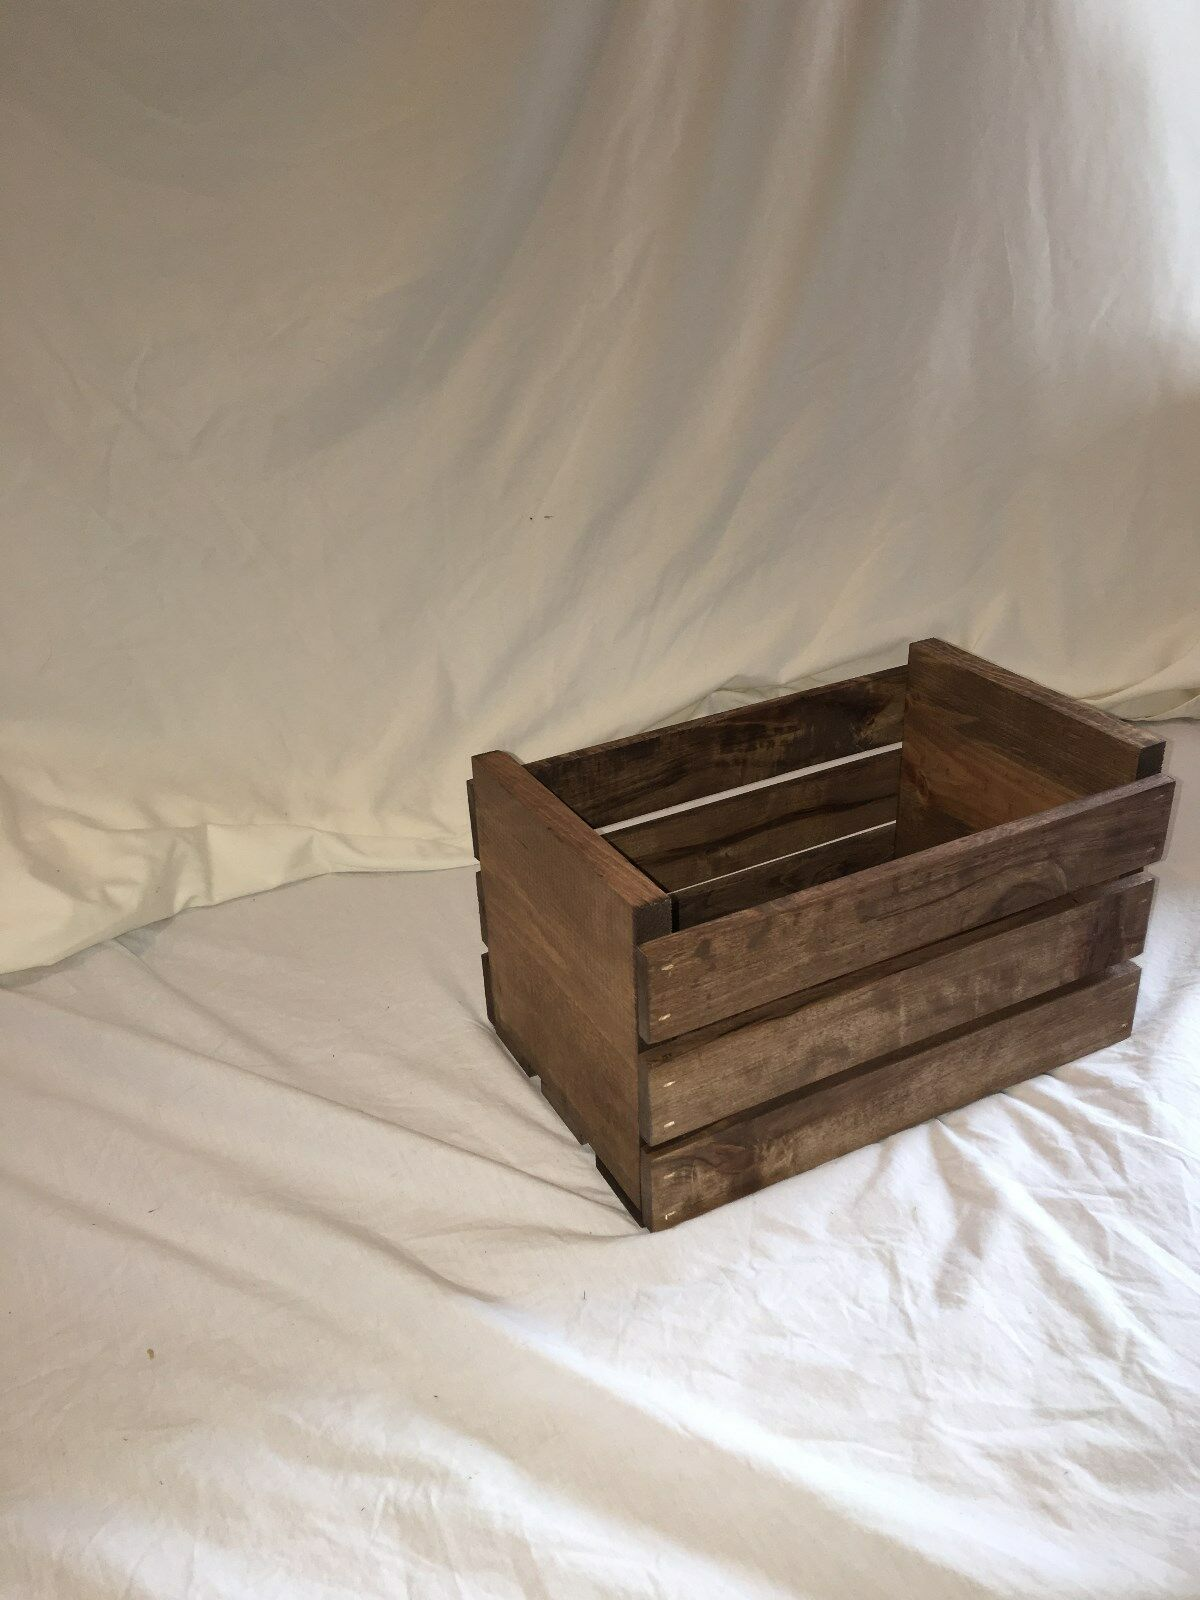 45 RPM Vinyl Record Storage Wood Crate